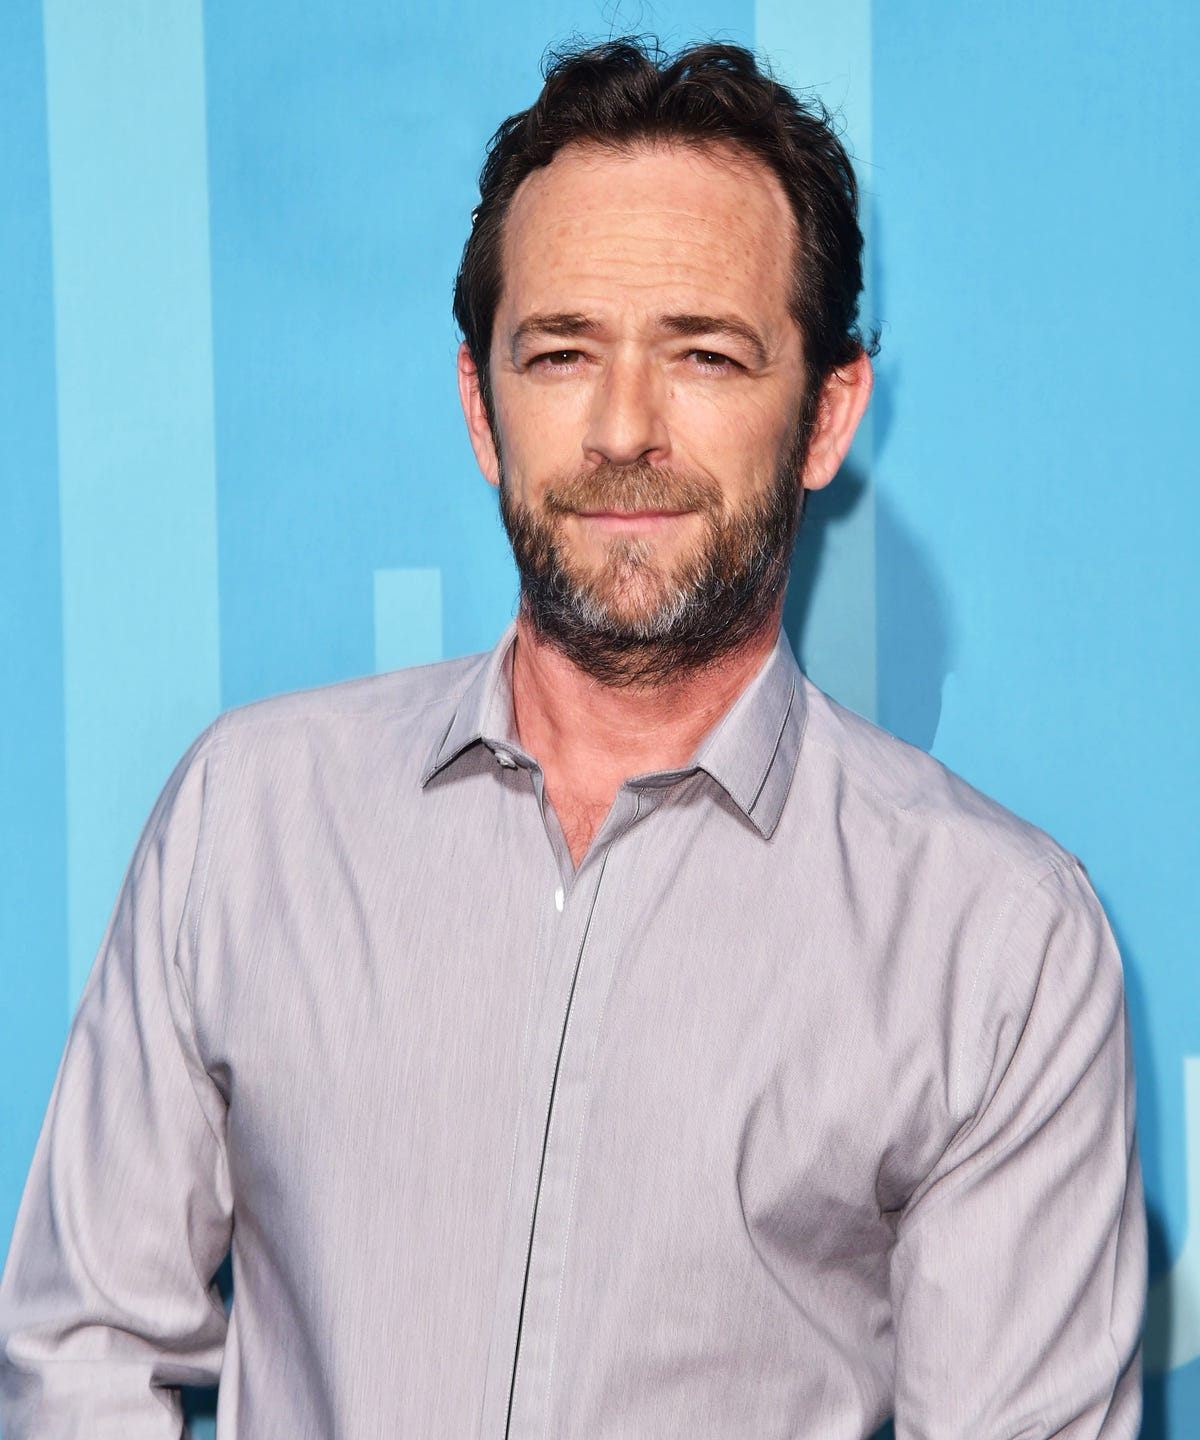 Luke Perry Ex-Wife, Kids, Fiancée By His Side At Death